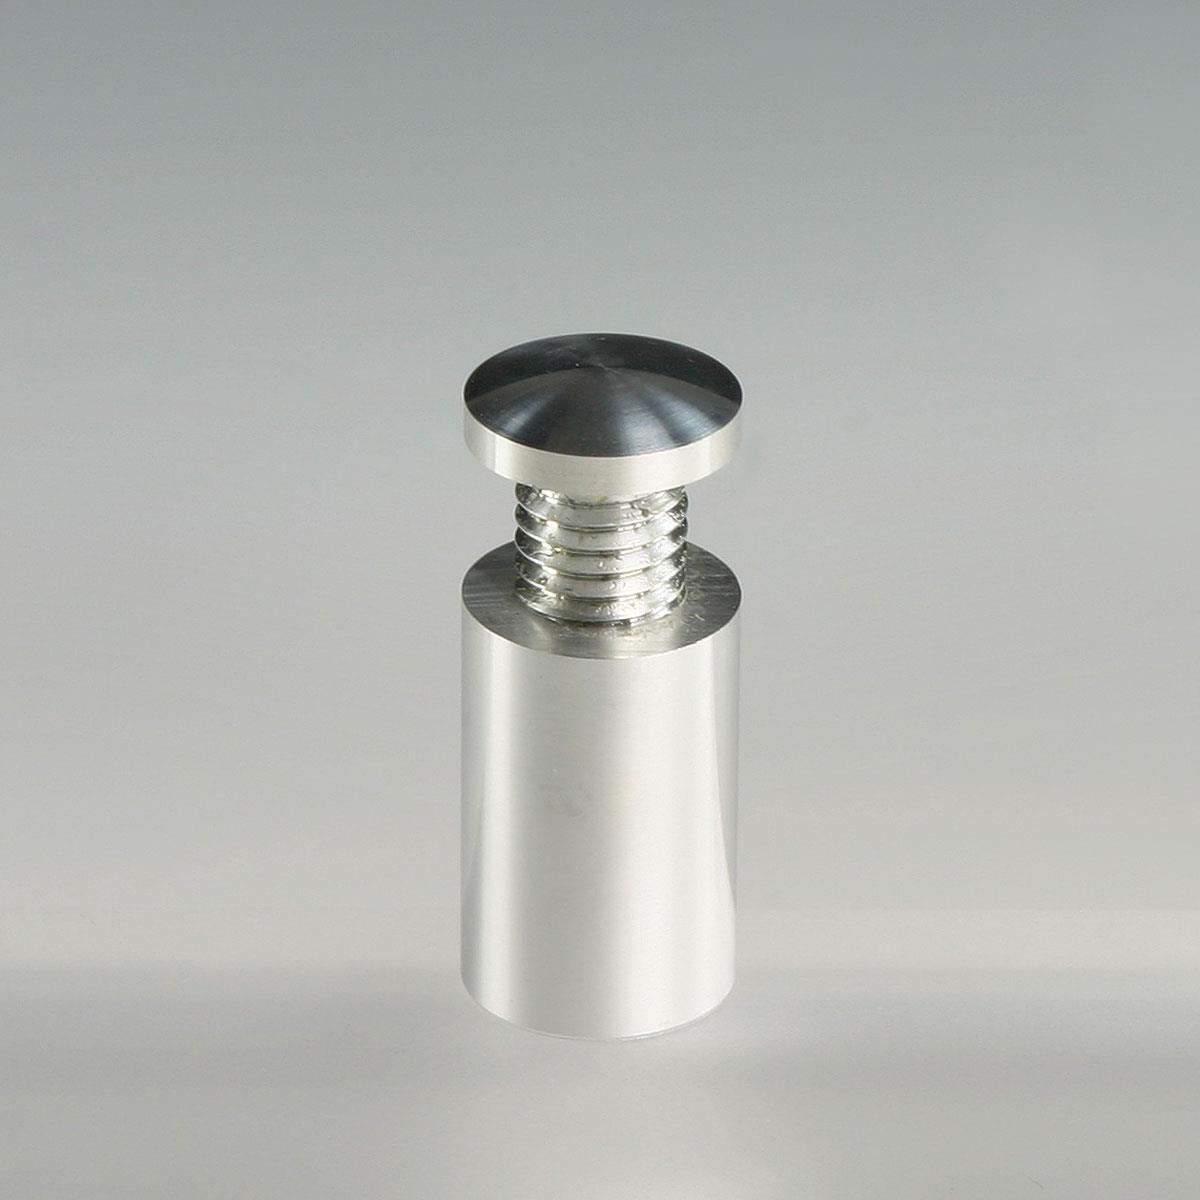 Aluminum Standoffs Are Inexpensive Yet High In Quality